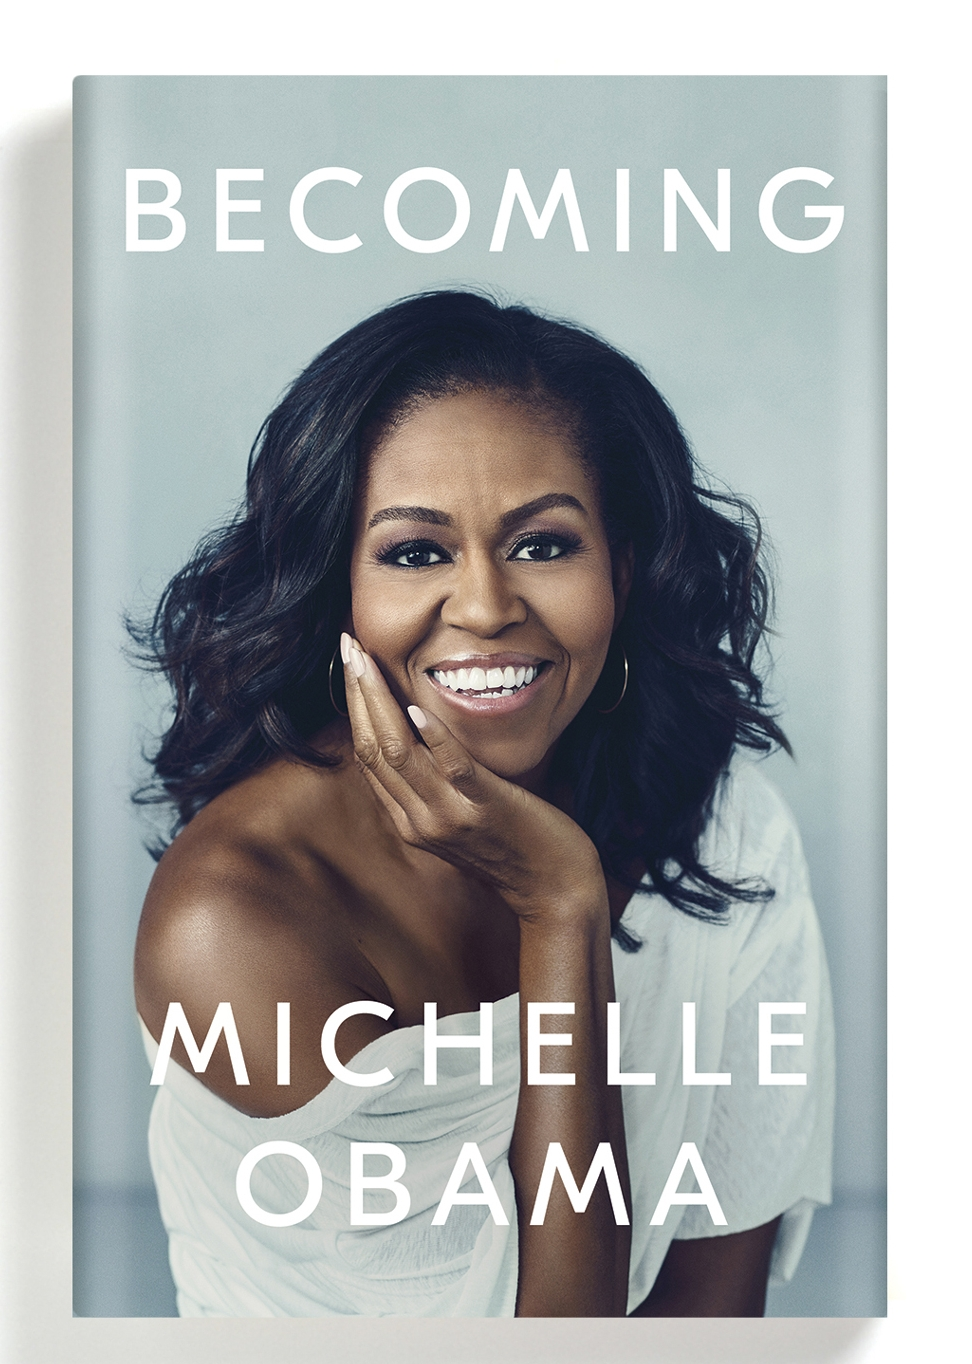 I can't wait to get a hold of Michelle Obama's new book. Photo credit: becomingmichelleobama.com